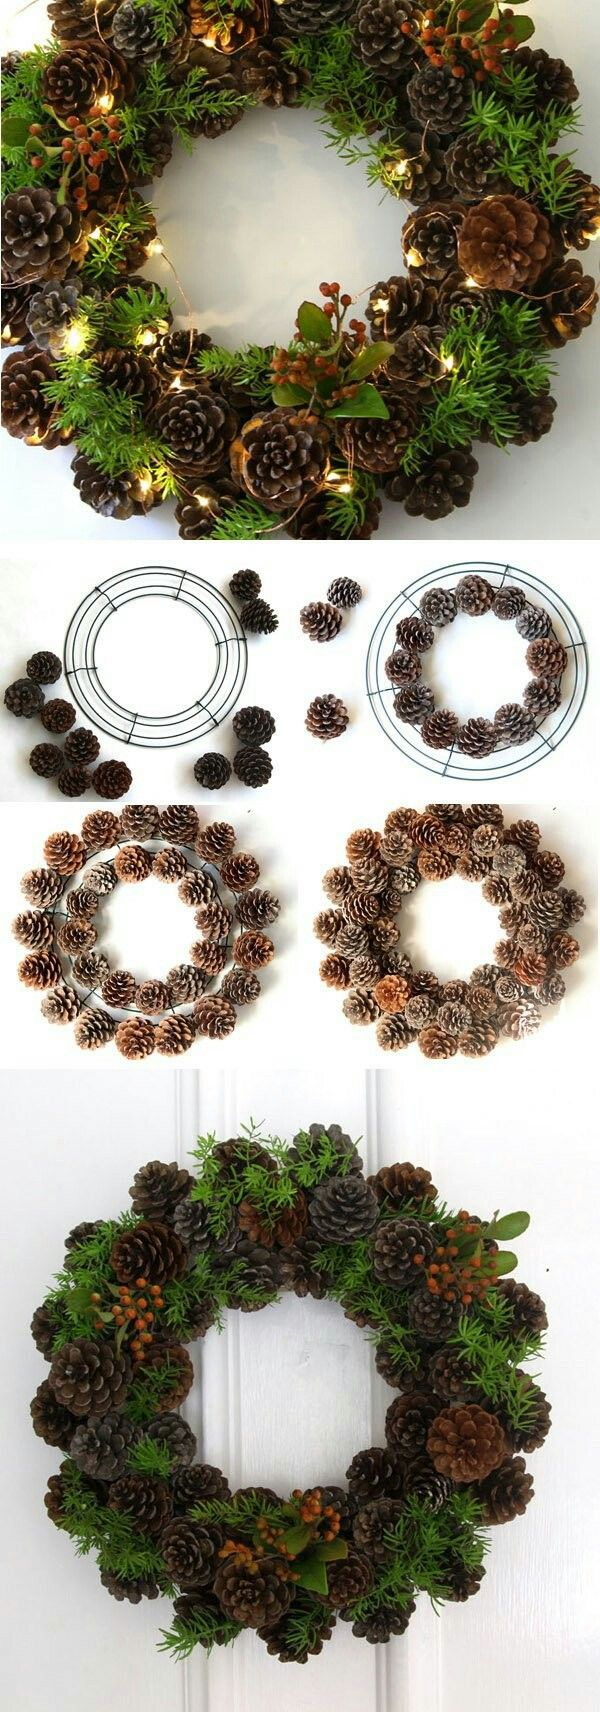 Wreath diy project